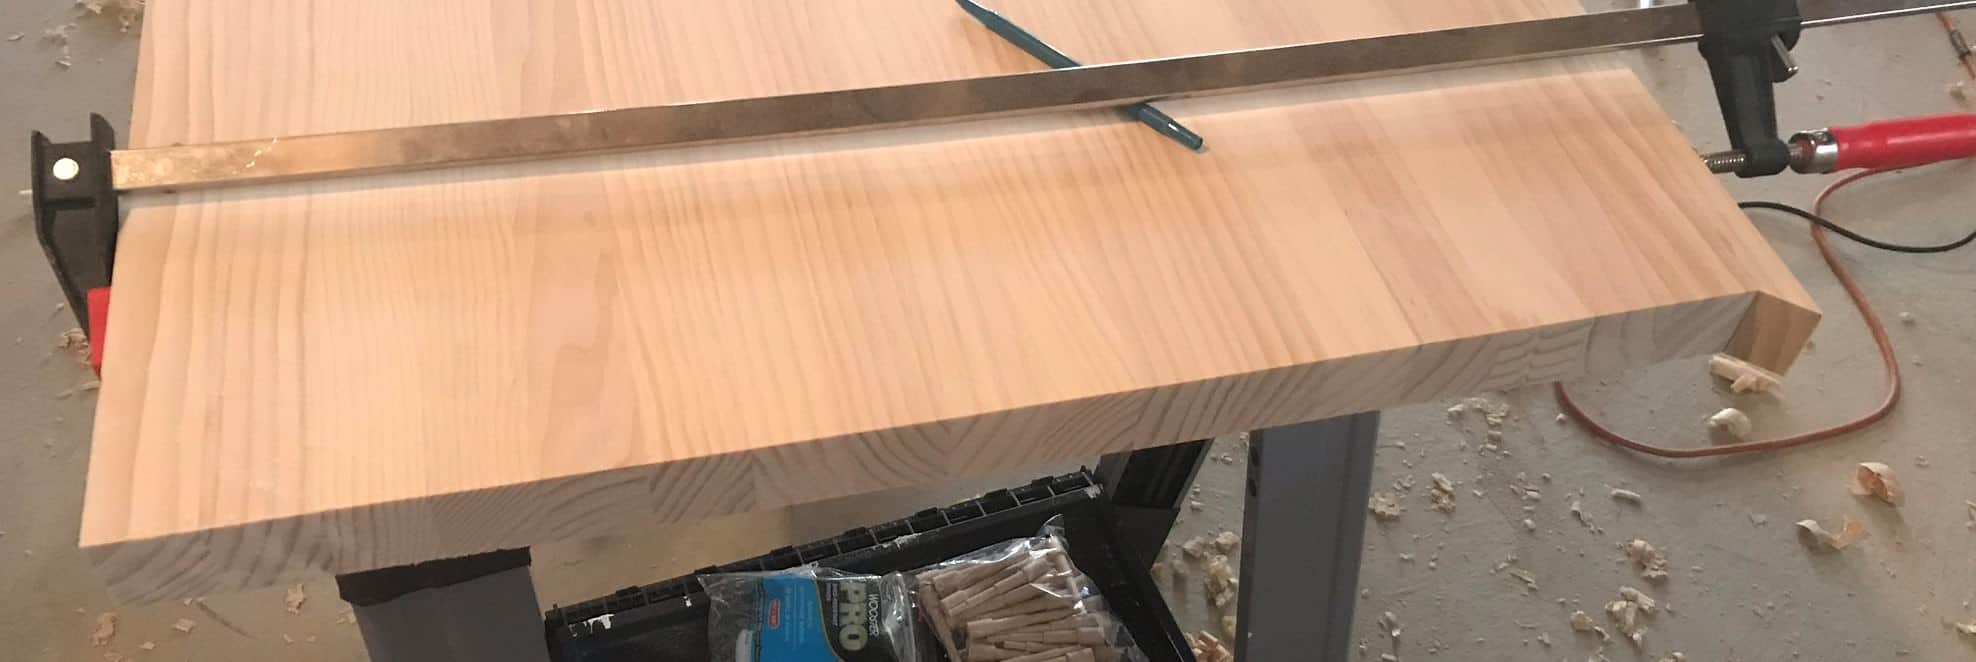 Adding a border to standing table desk